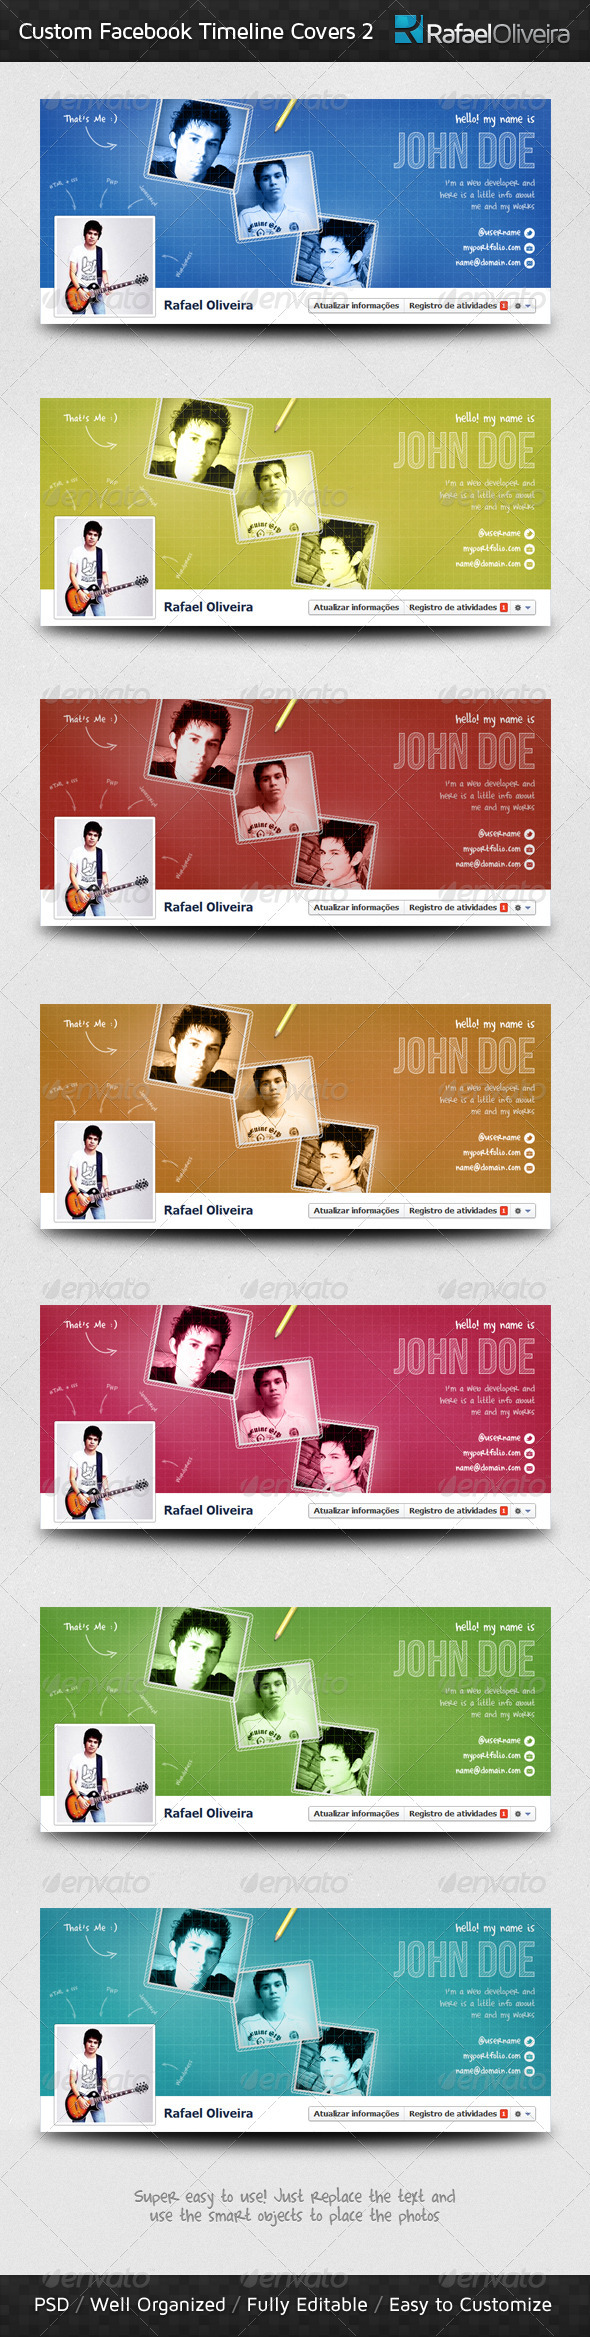 GraphicRiver Custom Facebook Timeline Covers 2 1501861